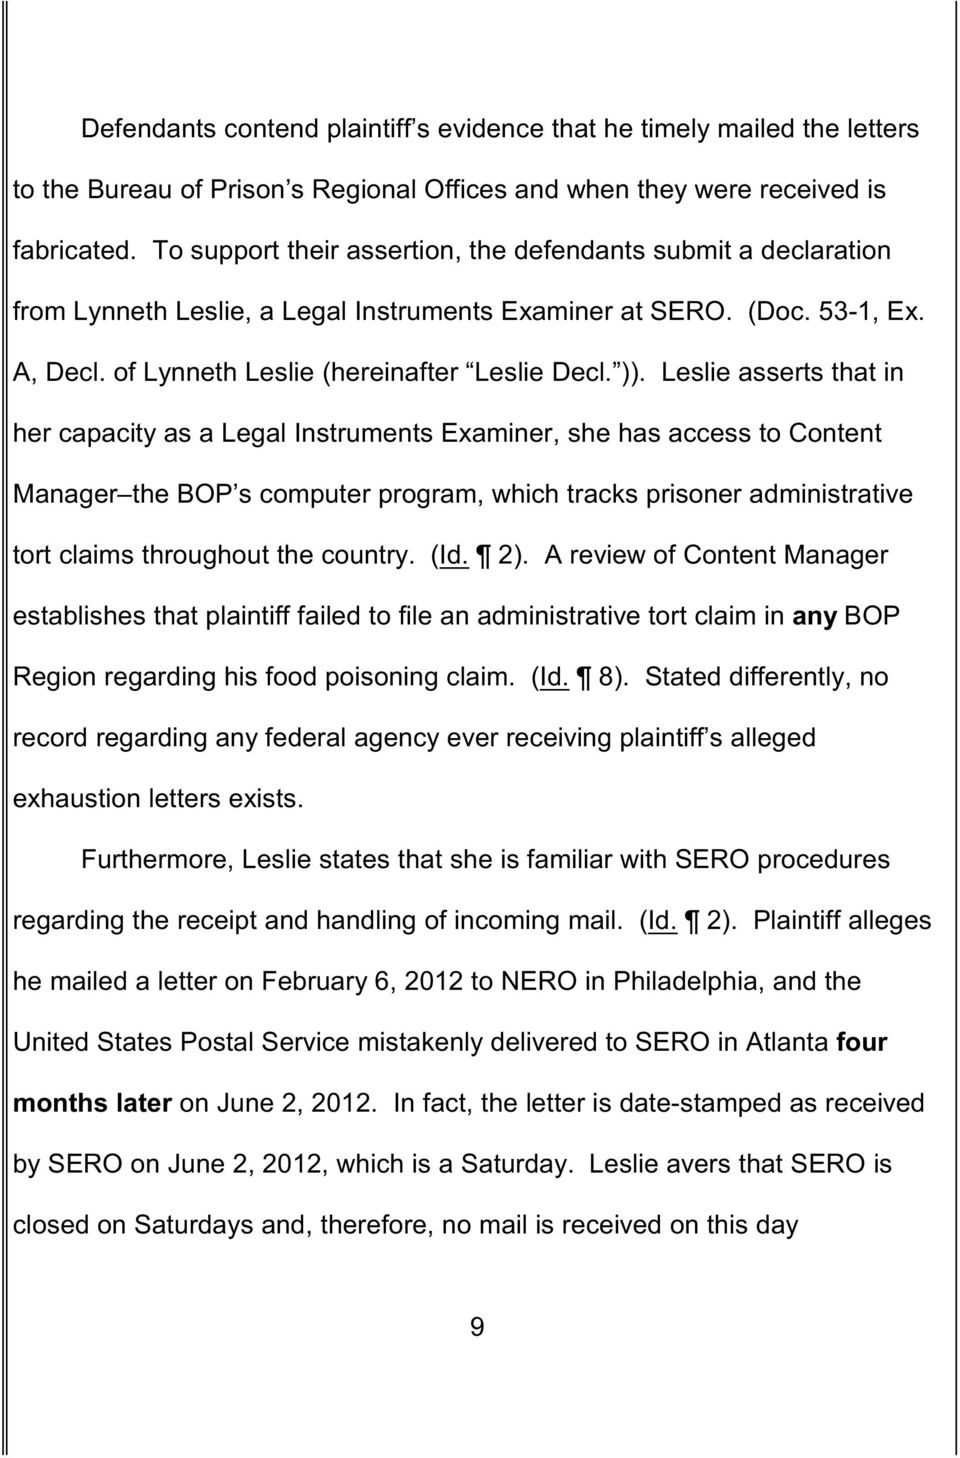 Leslie asserts that in her capacity as a Legal Instruments Examiner, she has access to Content Manager the BOP s computer program, which tracks prisoner administrative tort claims throughout the